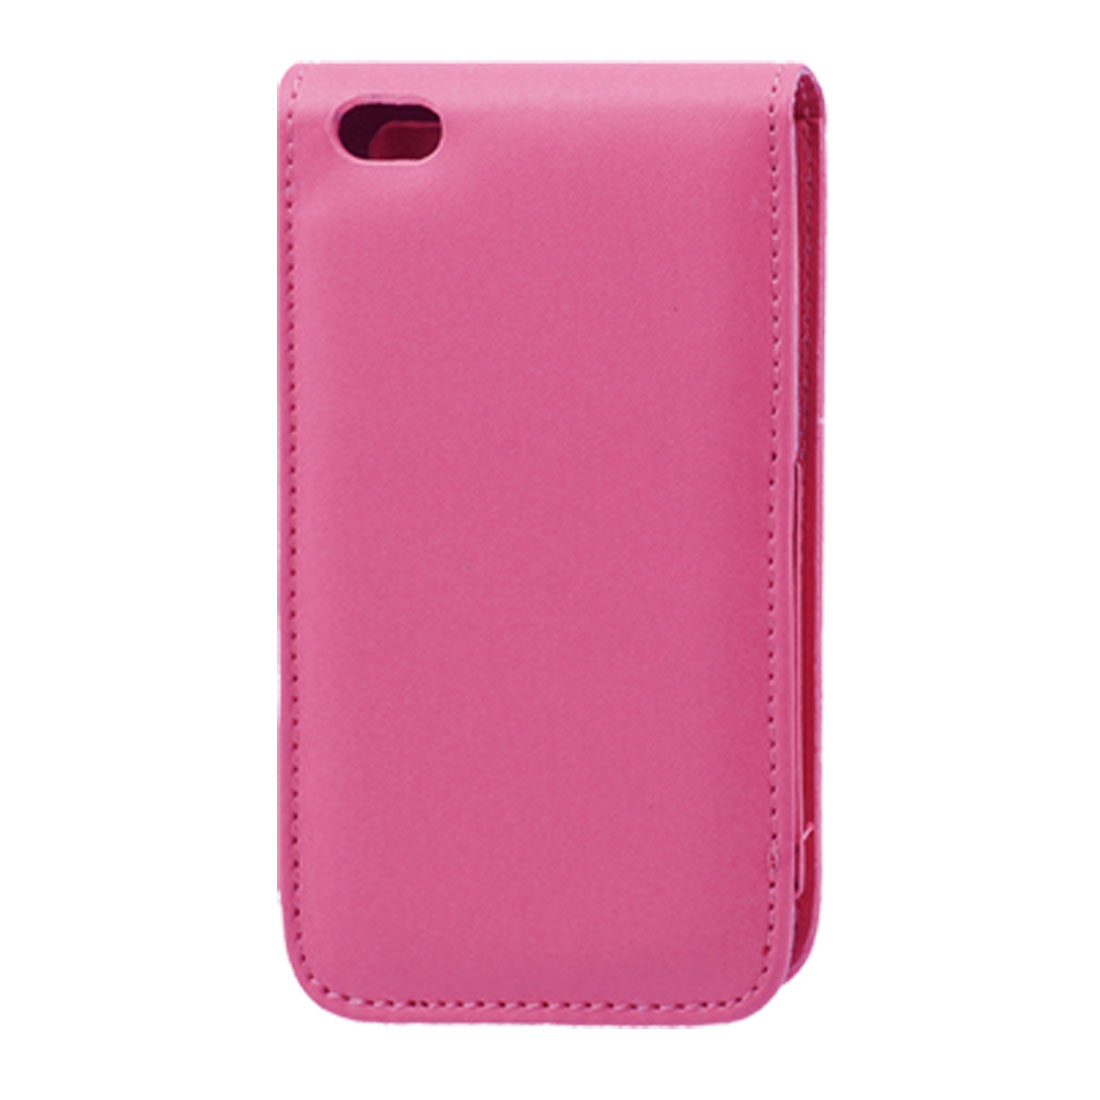 Fuchsia Faux Leather Flip Case Cover for iPod Touch 4G